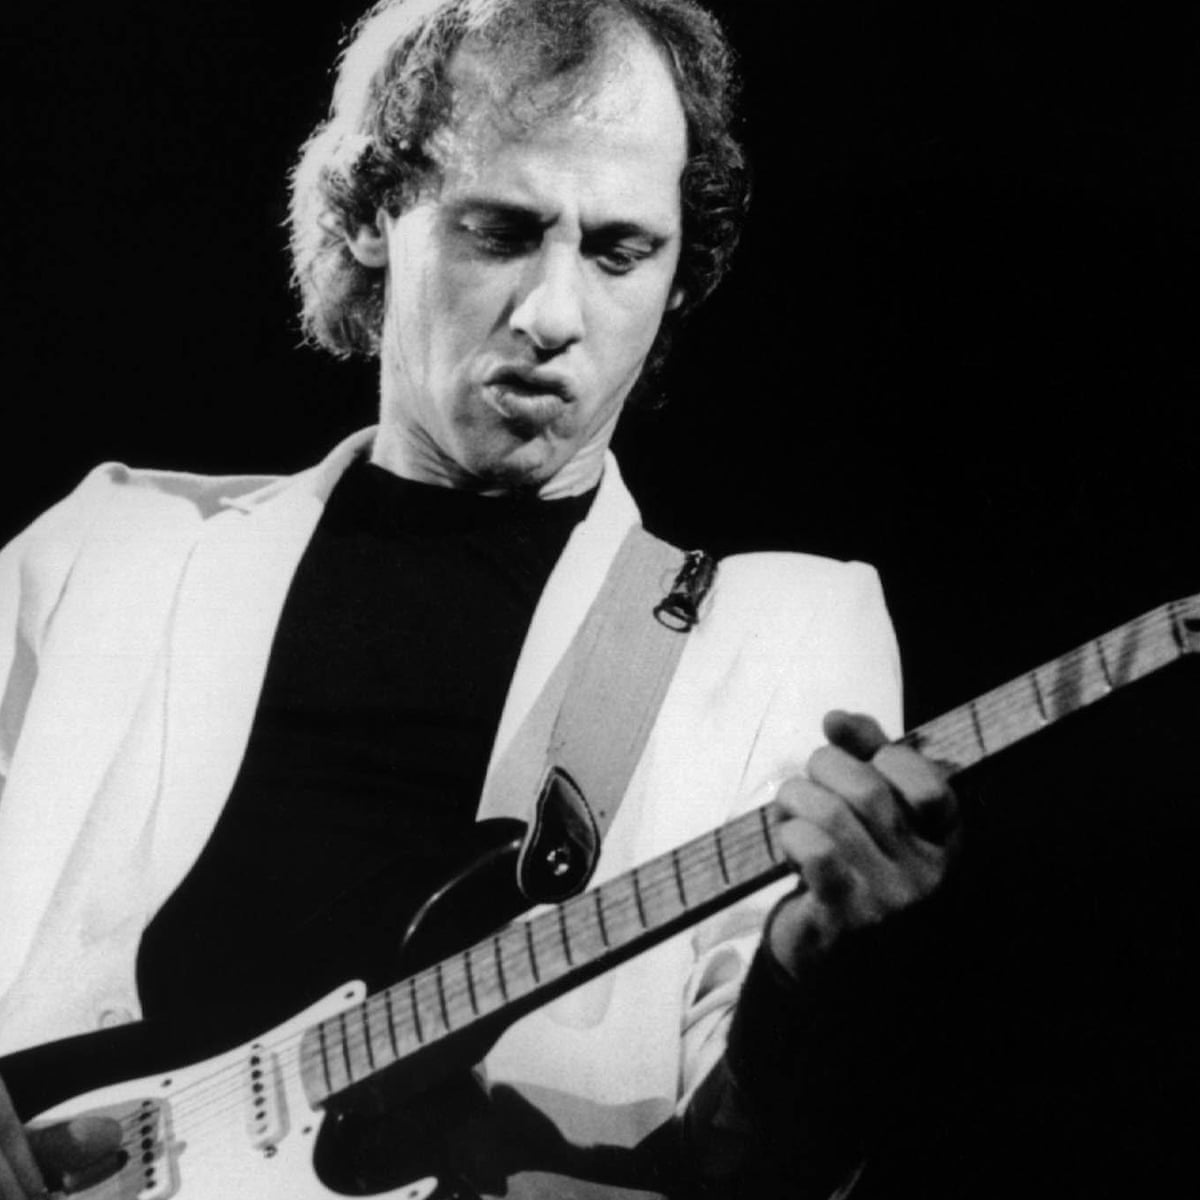 Dire Straits Straight On Up From Deptford To Dylan Archive 1979 Dire Straits The Guardian The 250 nautical miles separating the coasts of libya and sicily claim the lives of thousands of refugees, but the risks posed by cramming onto overcrowded boats are. dire straits straight on up from